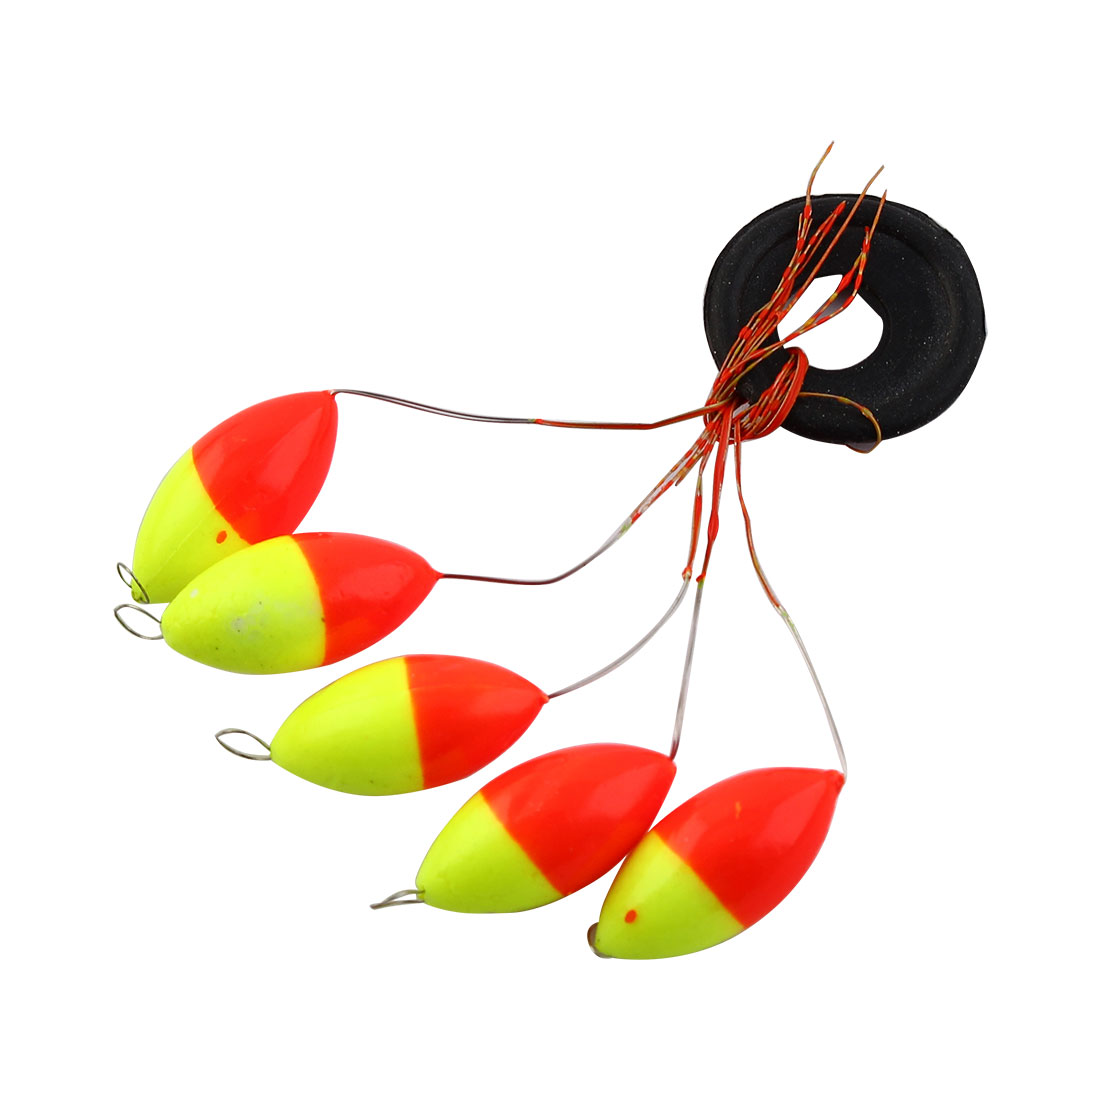 Fishing Tackle 6 in 1 Yellow Red Plastic Oval Bobber Stopper